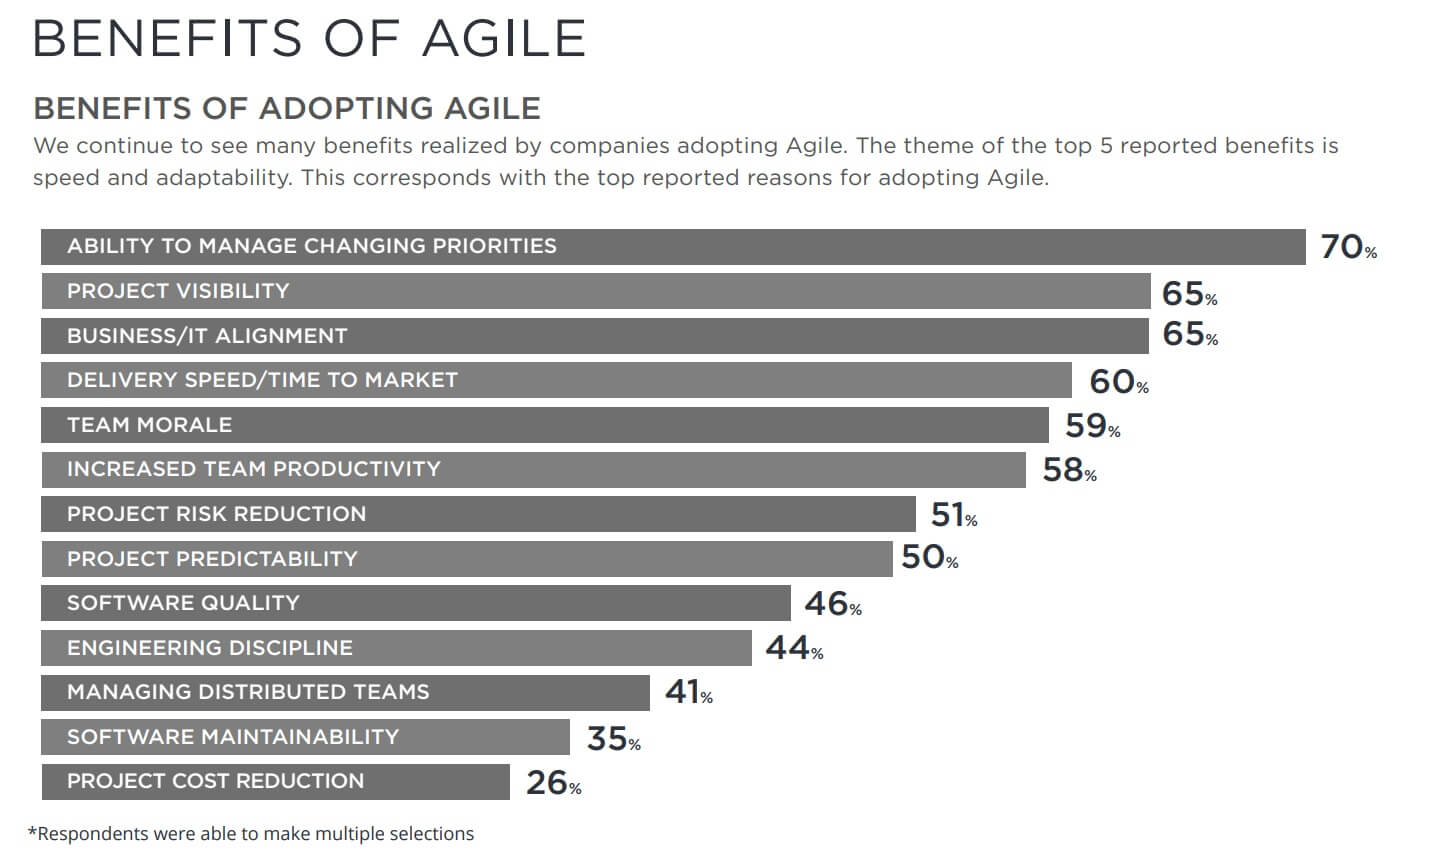 benefits of agile bar graph